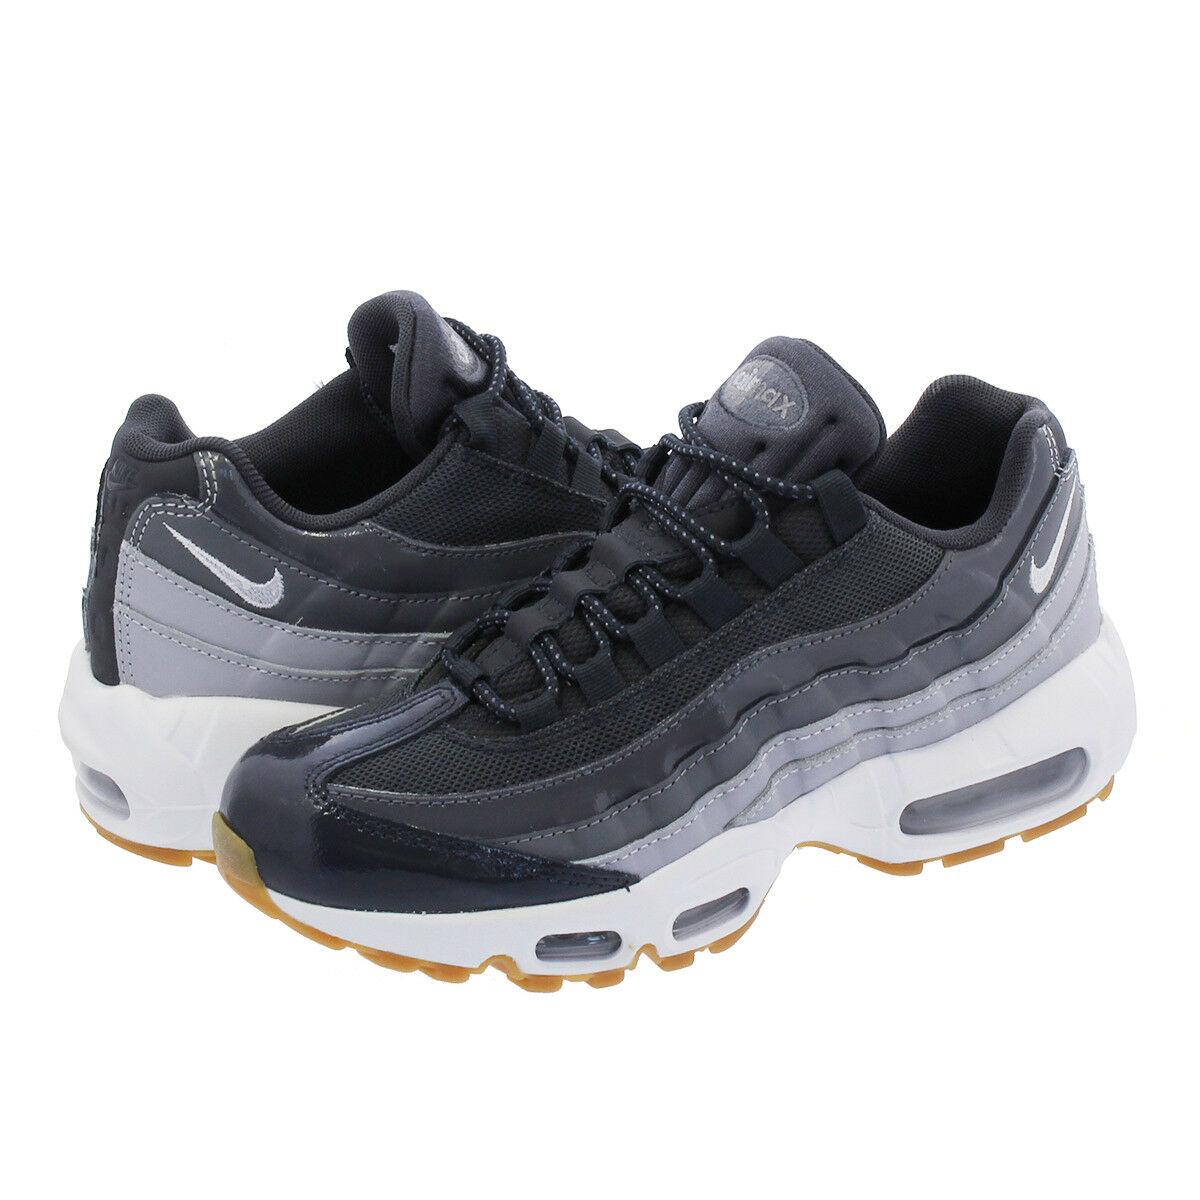 Nike Air Max Max Max 95 femmes Mens Running Anthracite 307960-012 Taille 11.5 NWT 45cd29